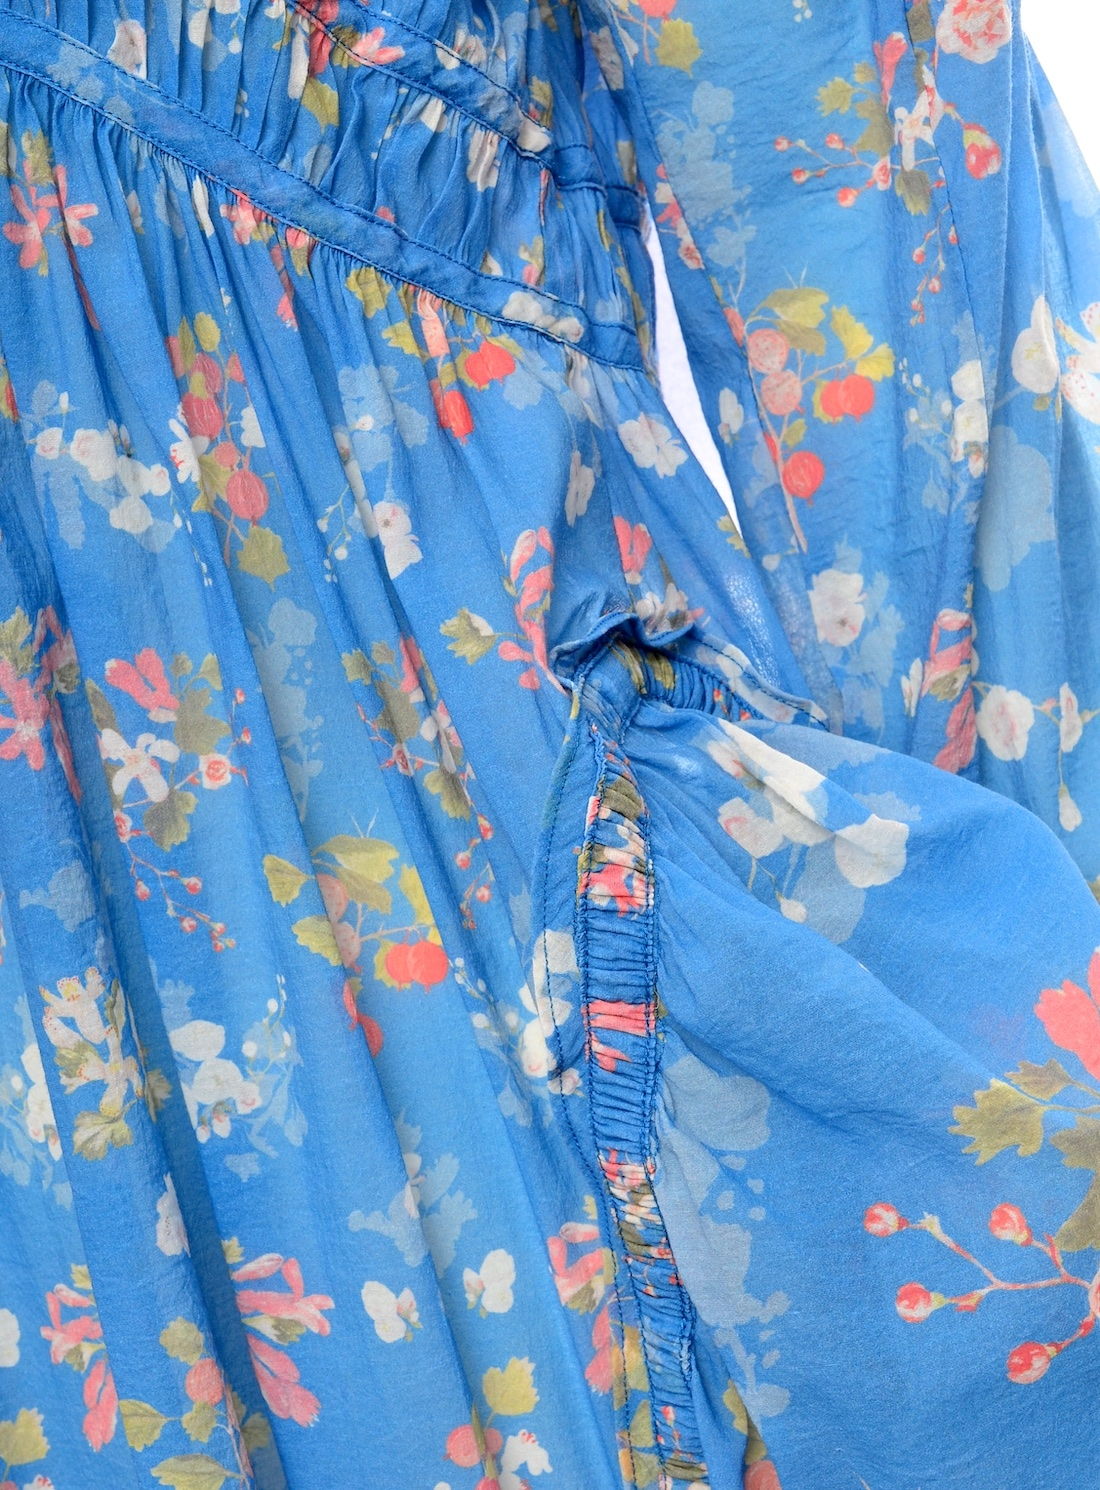 24432-young-british-designers-blue-fruit-and-floral-dress-by-renli-su_raw.jpg